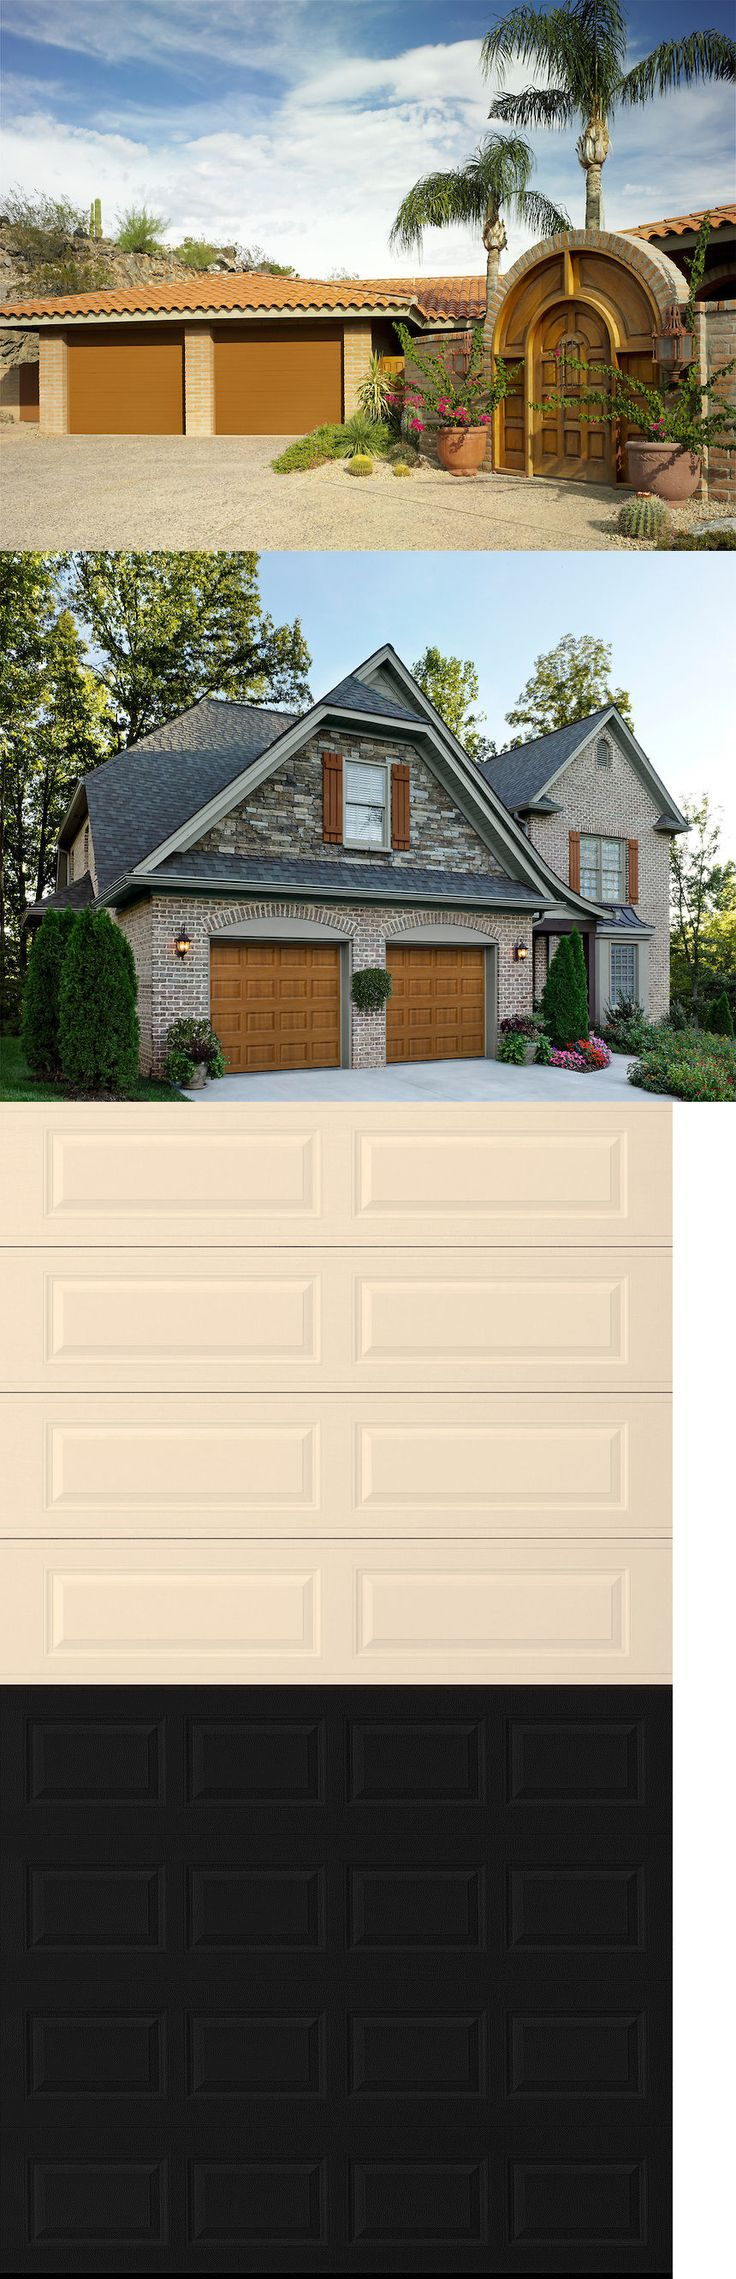 Garage doors sizes available - Garage Doors 115699 Duro Steel Amarr 1000 Series Available Sizes 8x7 To 20x14 Overhead Garage